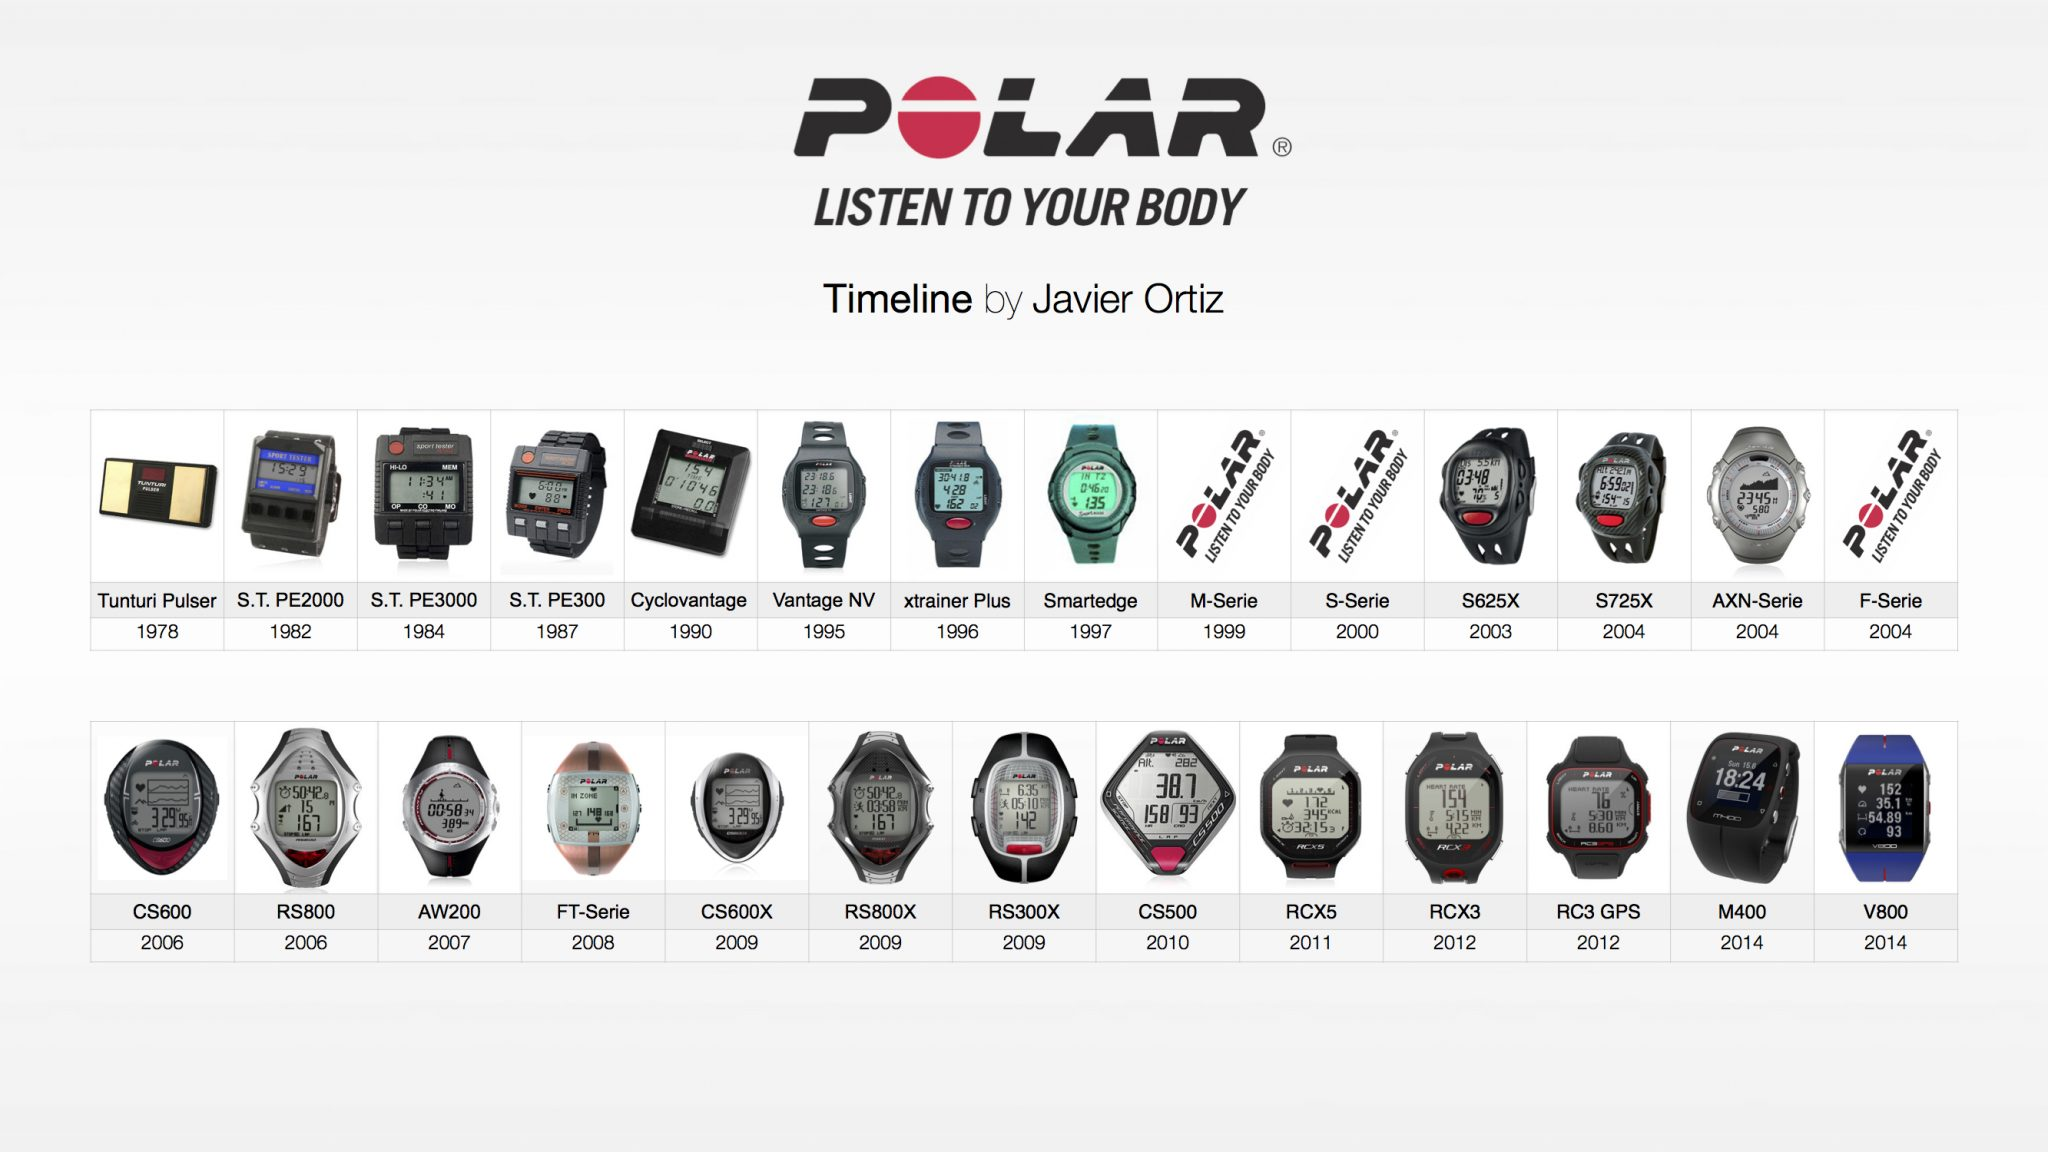 Cycling/Running/Triathlon 'Watches': Current Models and